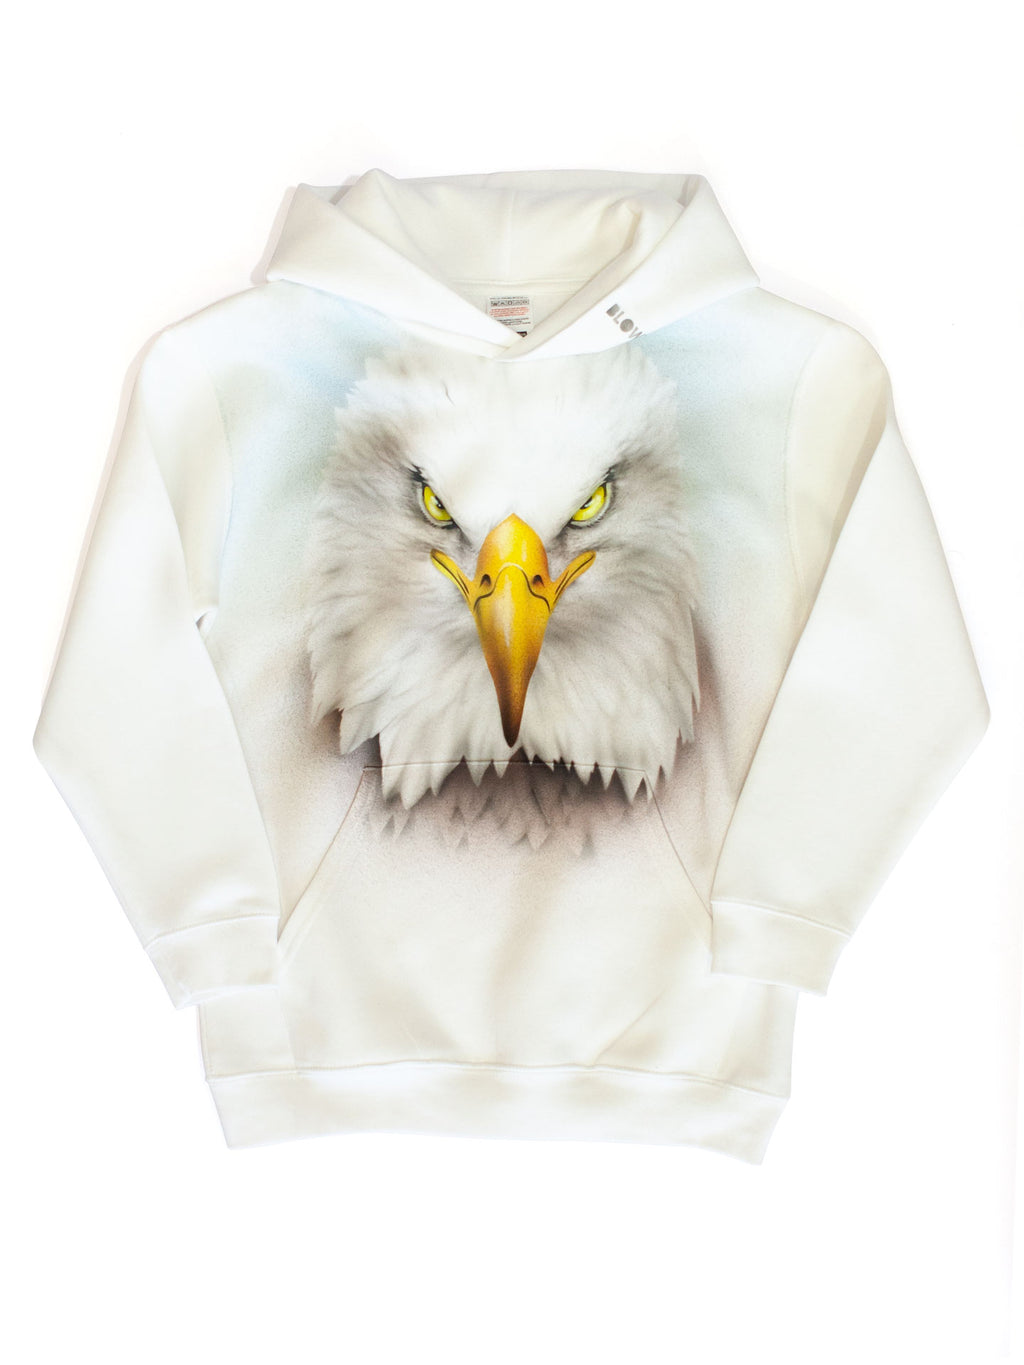 BIRD OF PREY - Kids premium hoodie with front pouch pocket